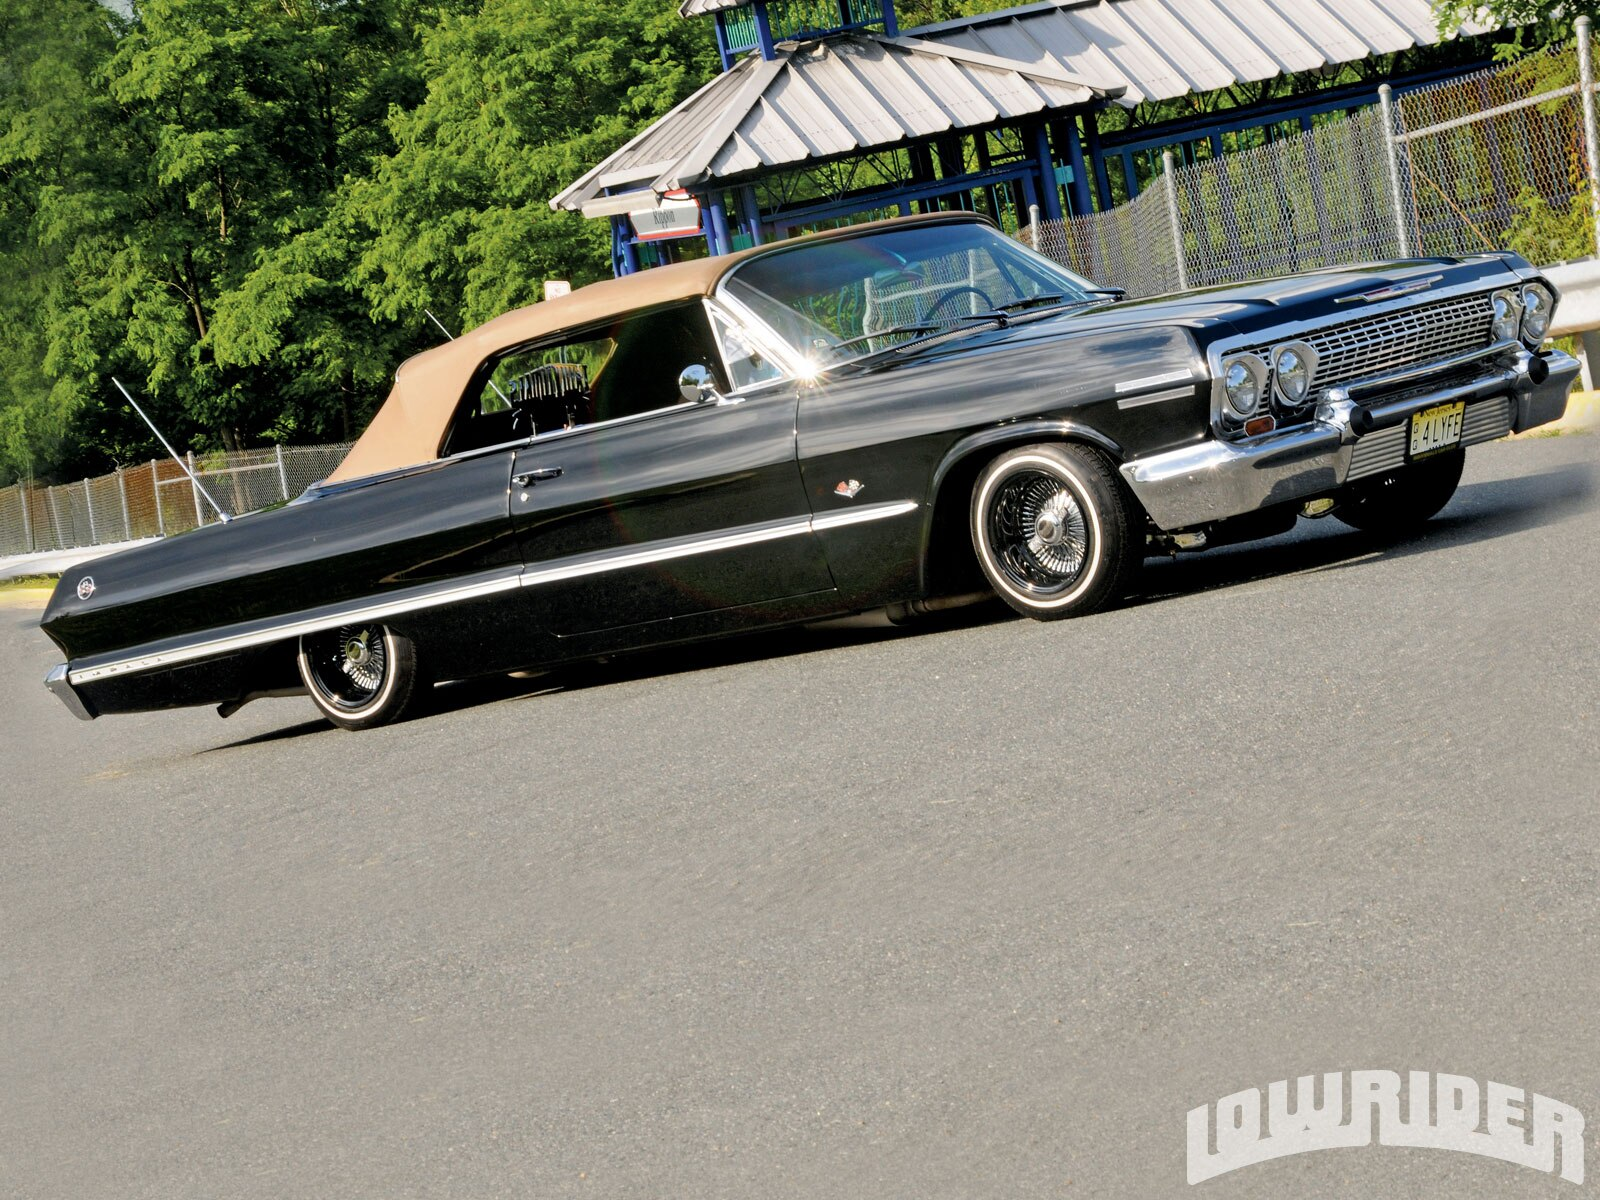 lrmp_1008_02_o-1963_chevrolet_impala_ss_convertible-side_view3